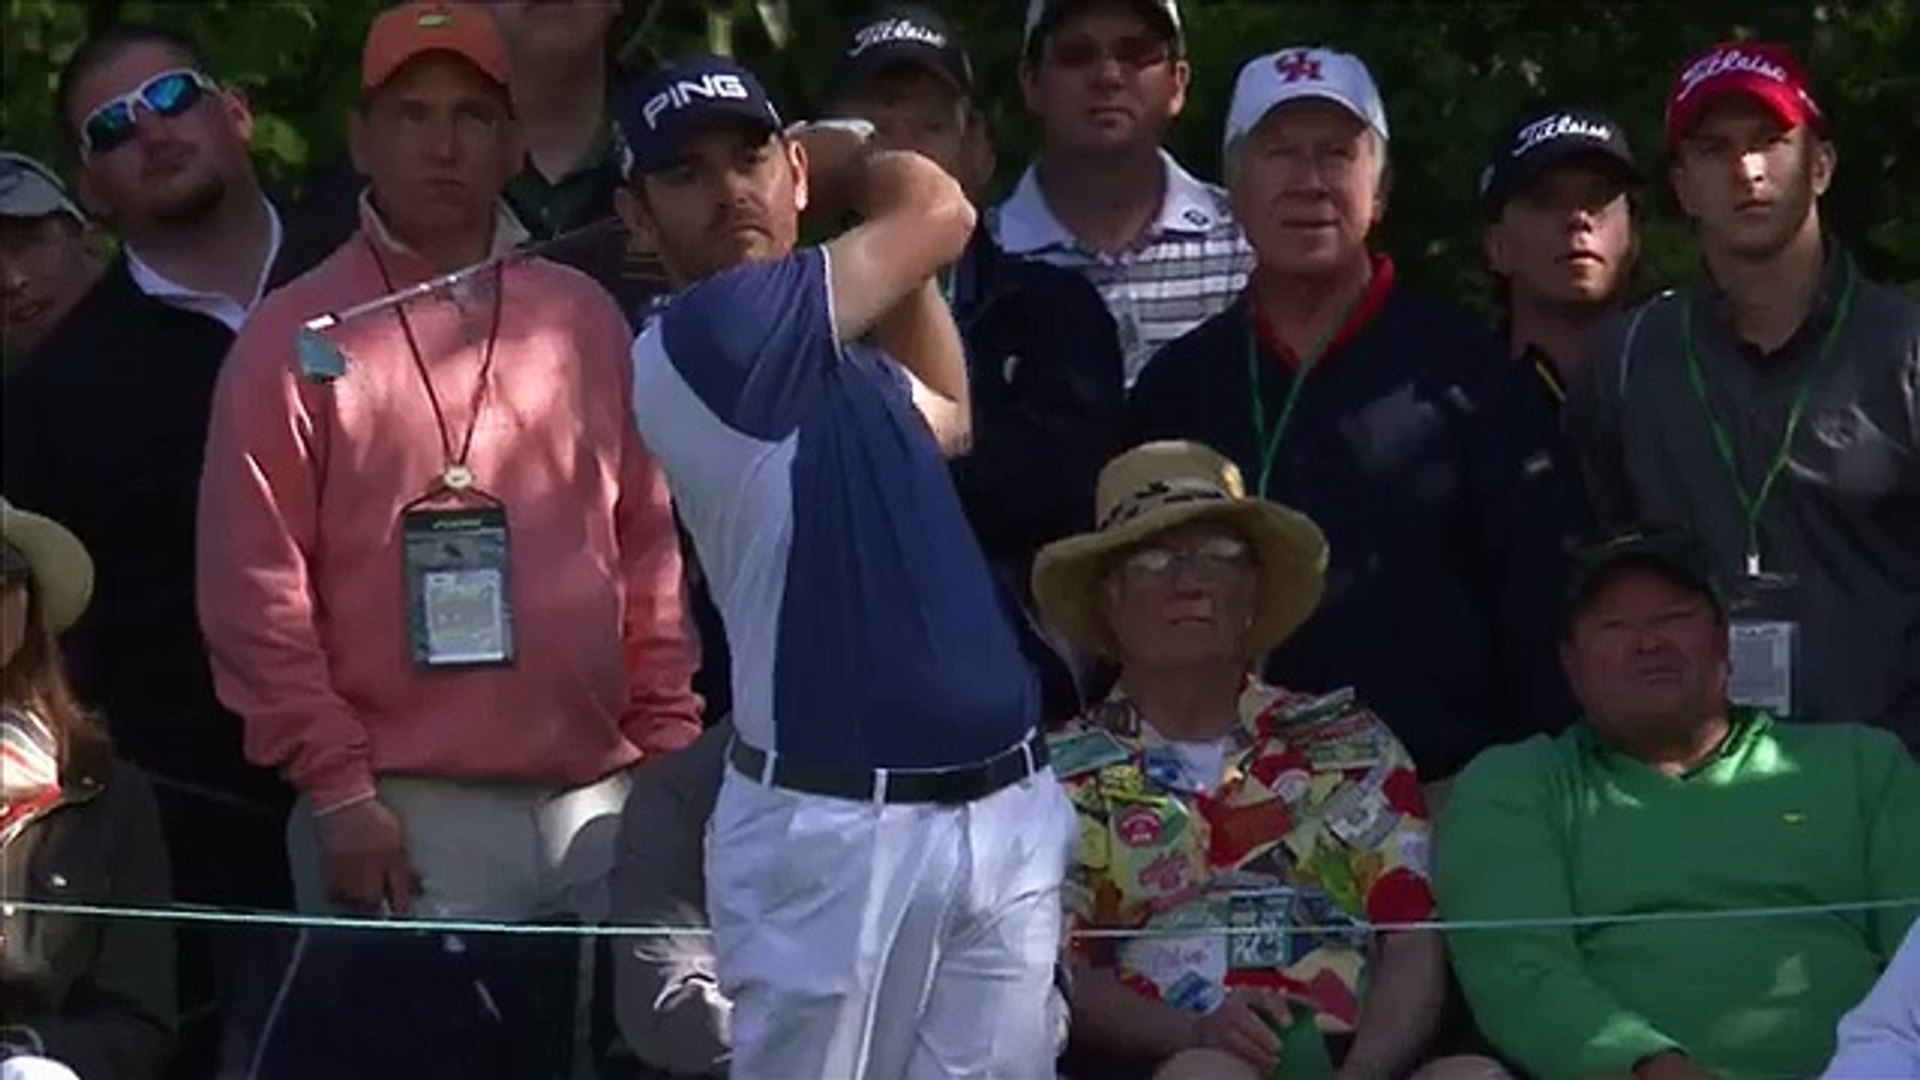 Louis Oosthuizen's 'unbelievable' hole-in-one after his ball hits another ball!